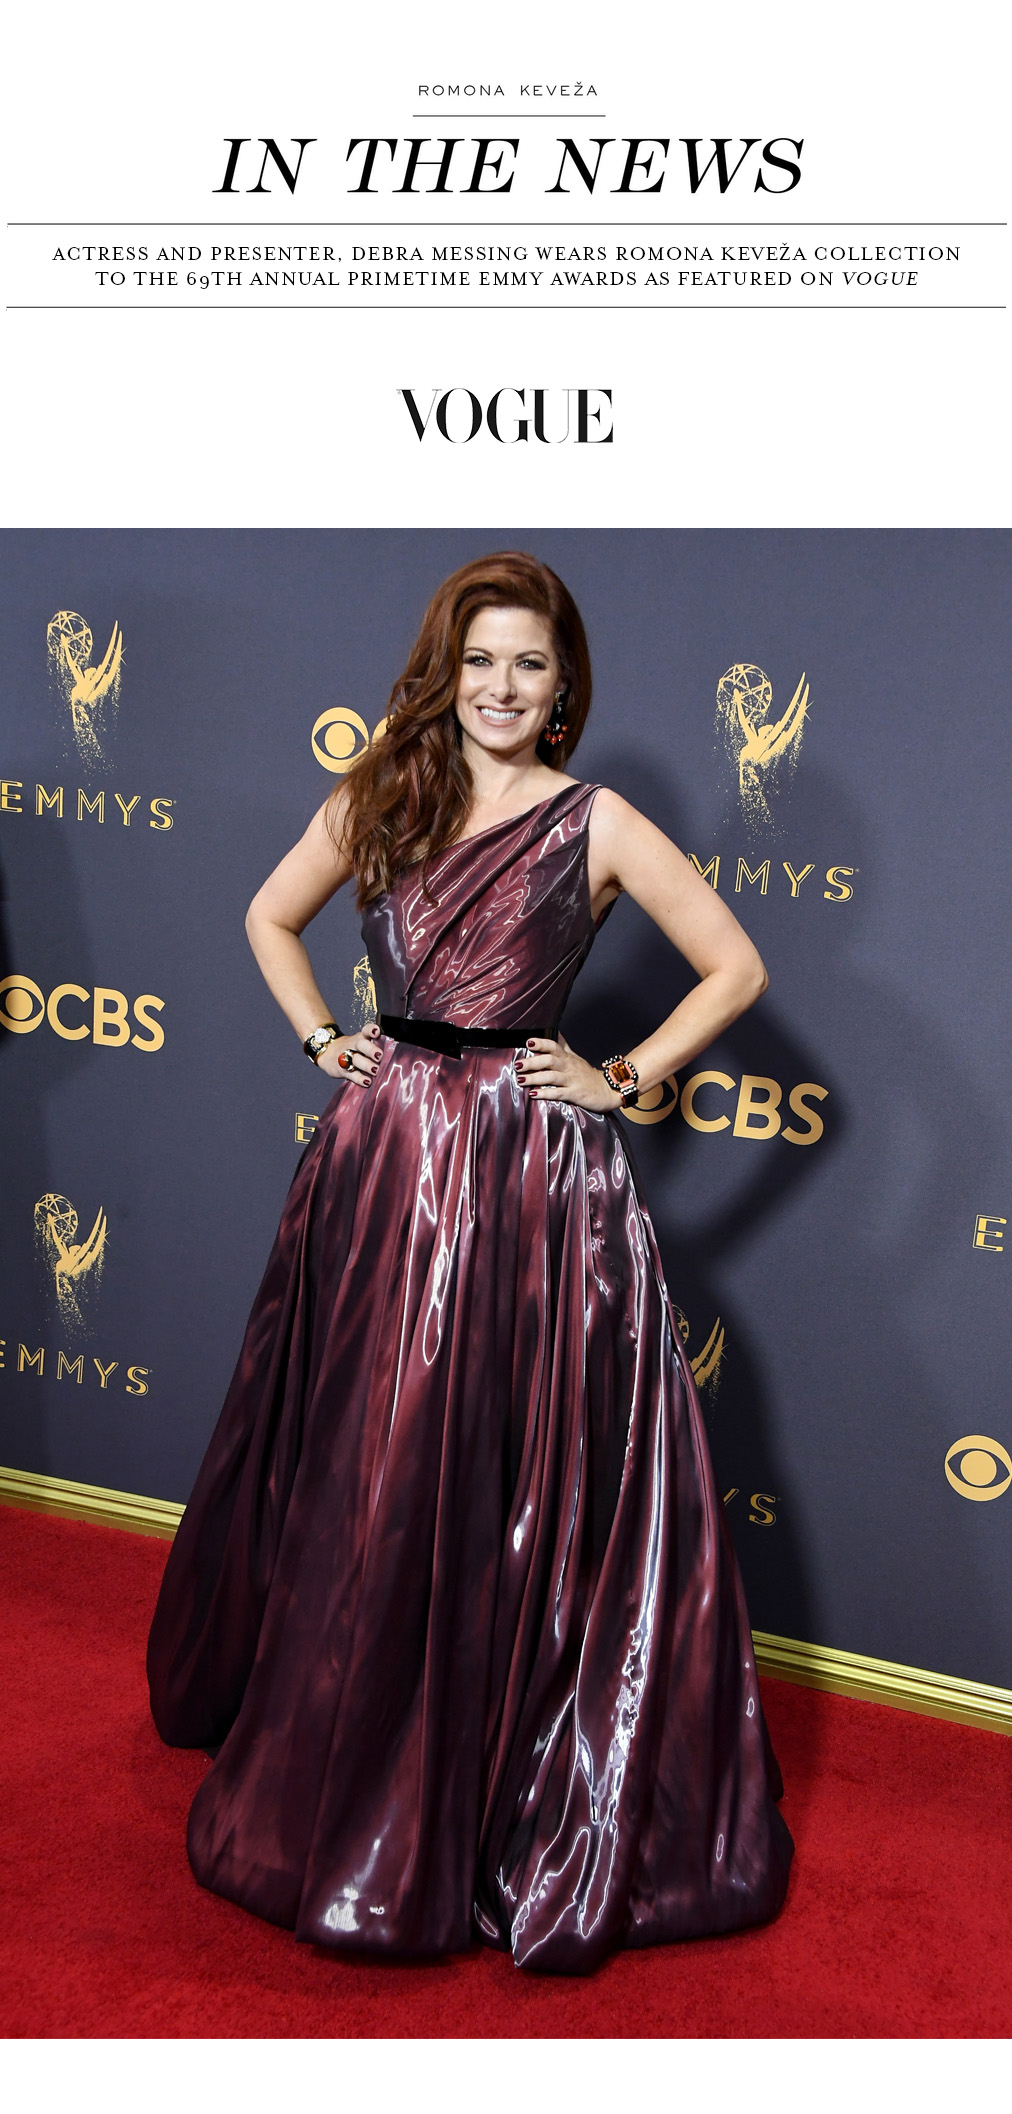 IN-THE-NEWS-WEB-EMMYS-2017-DEBRA-MESSING.jpg